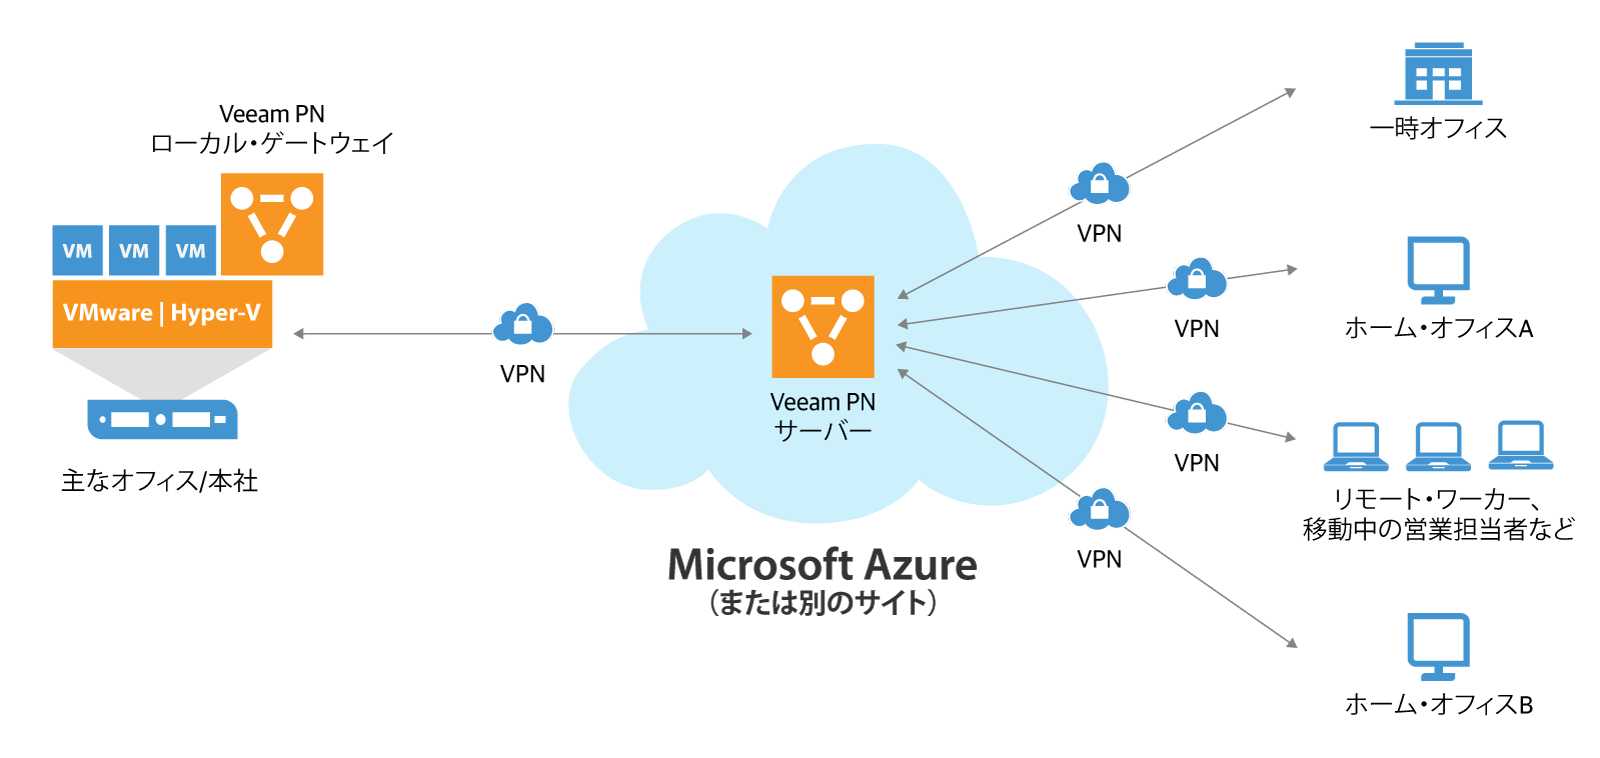 veeam_pn_for_microsoft_azure_jp.png